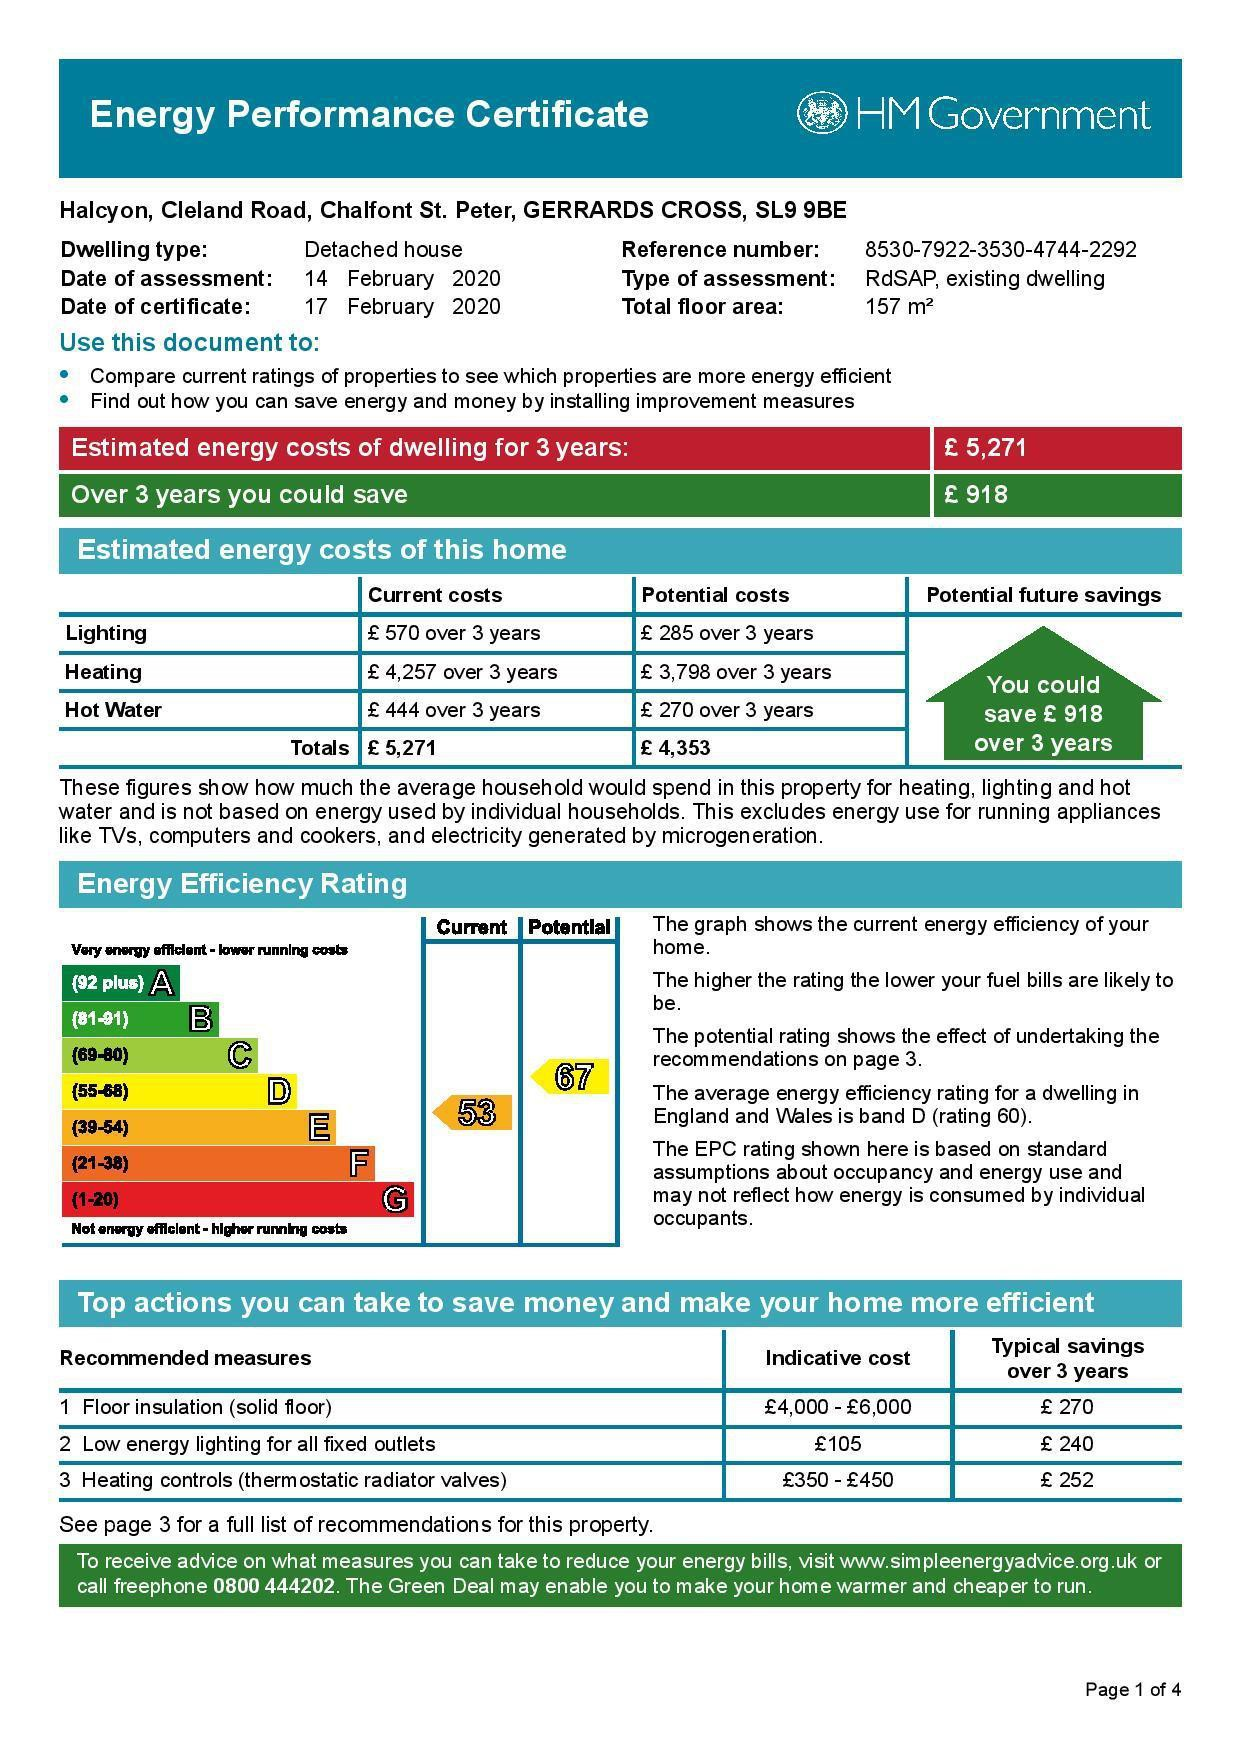 EPC Graph for Halcyon, Cleland Road, Chalfont St Peter, Buckinghamshire, SL9 9BE